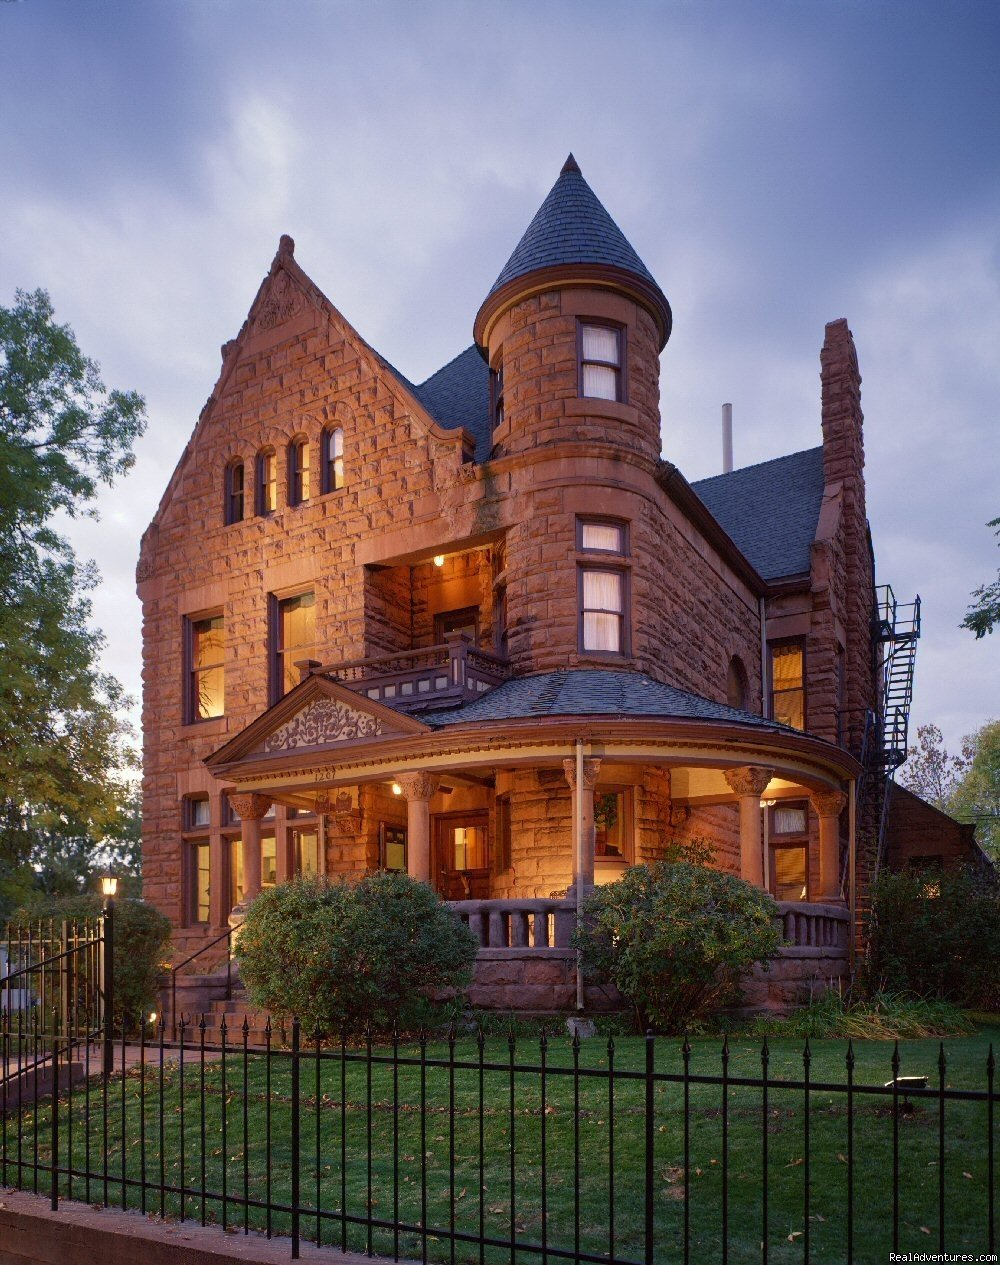 1891 Ruby Sandstone Mansion, Located in Downtown Denver. Eight Rooms with Private Bathroom. $114 -199 per night, plus tax.